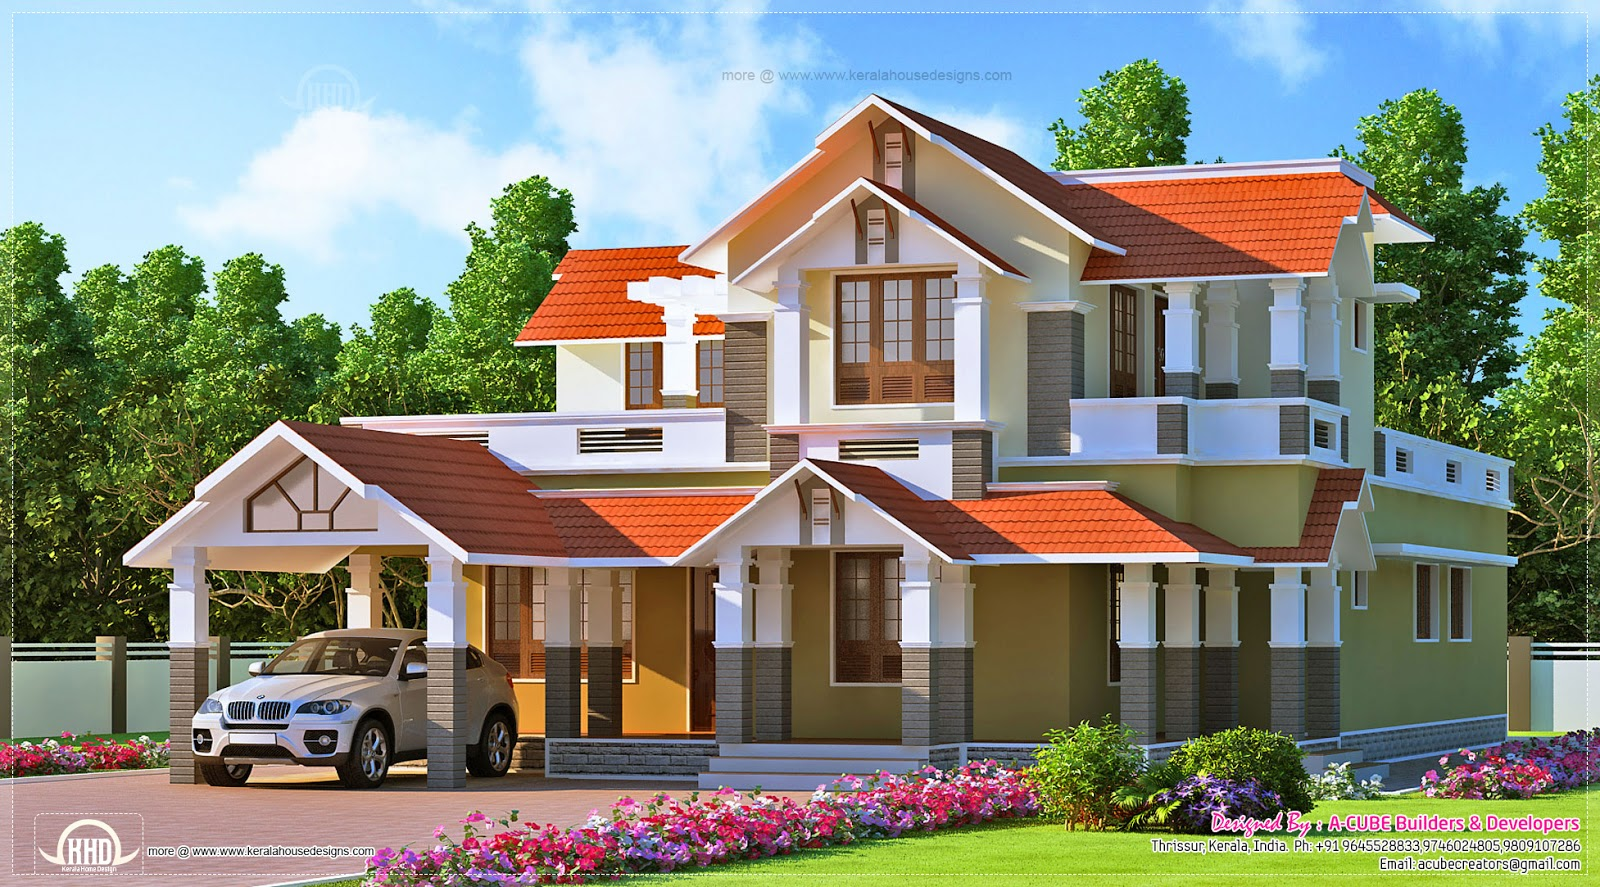 Dream Home Design Of Eco Friendly Houses Kerala Style Dream Home Design